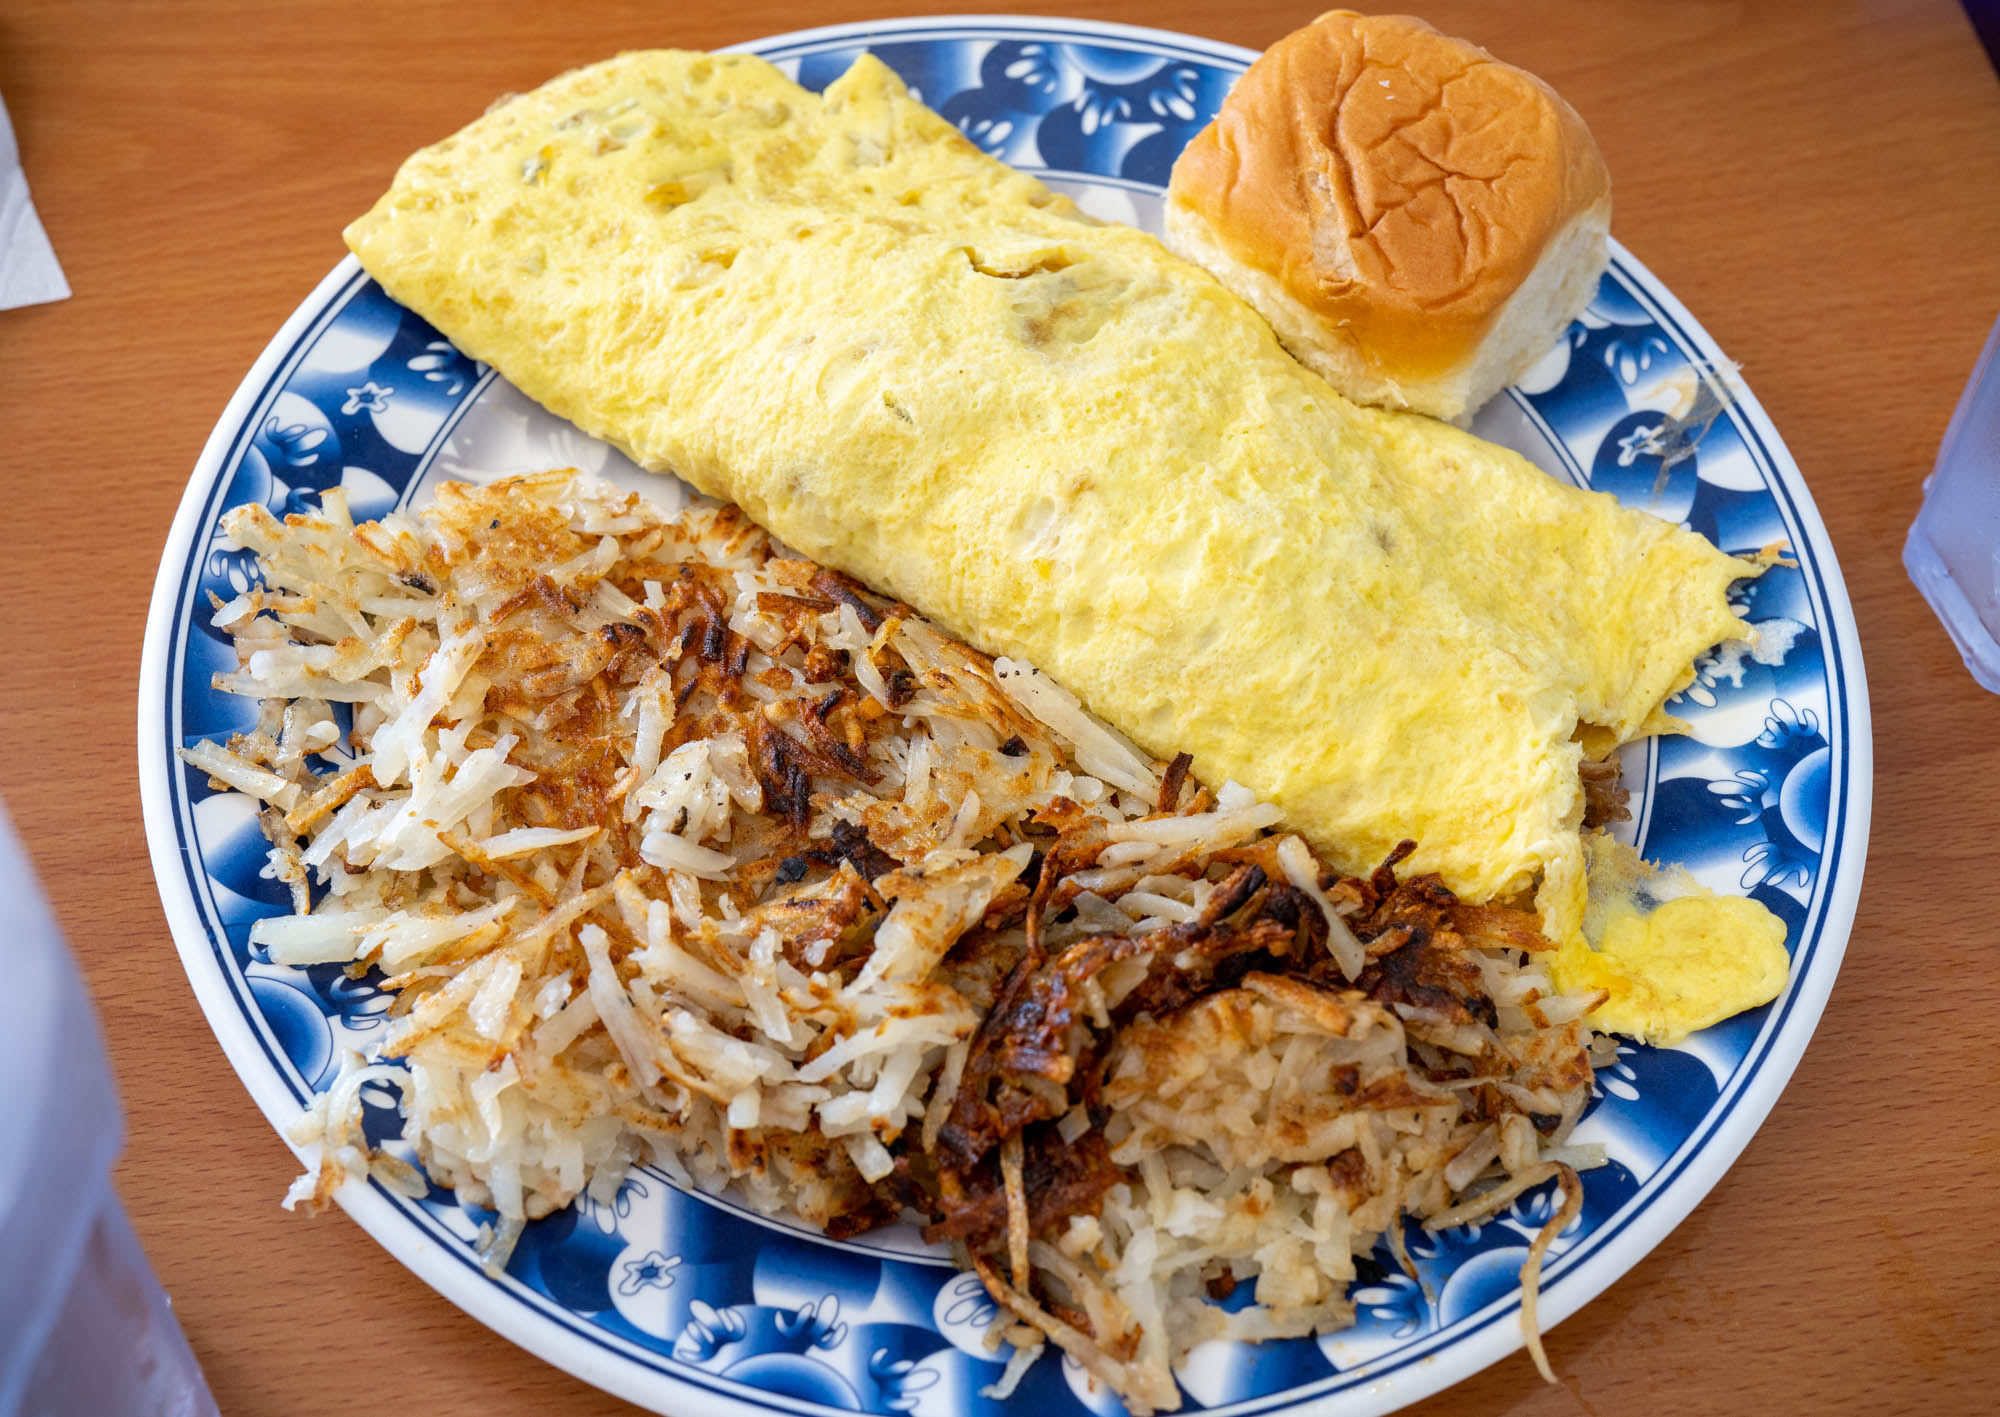 Kalua Pork Omelette with hash browns